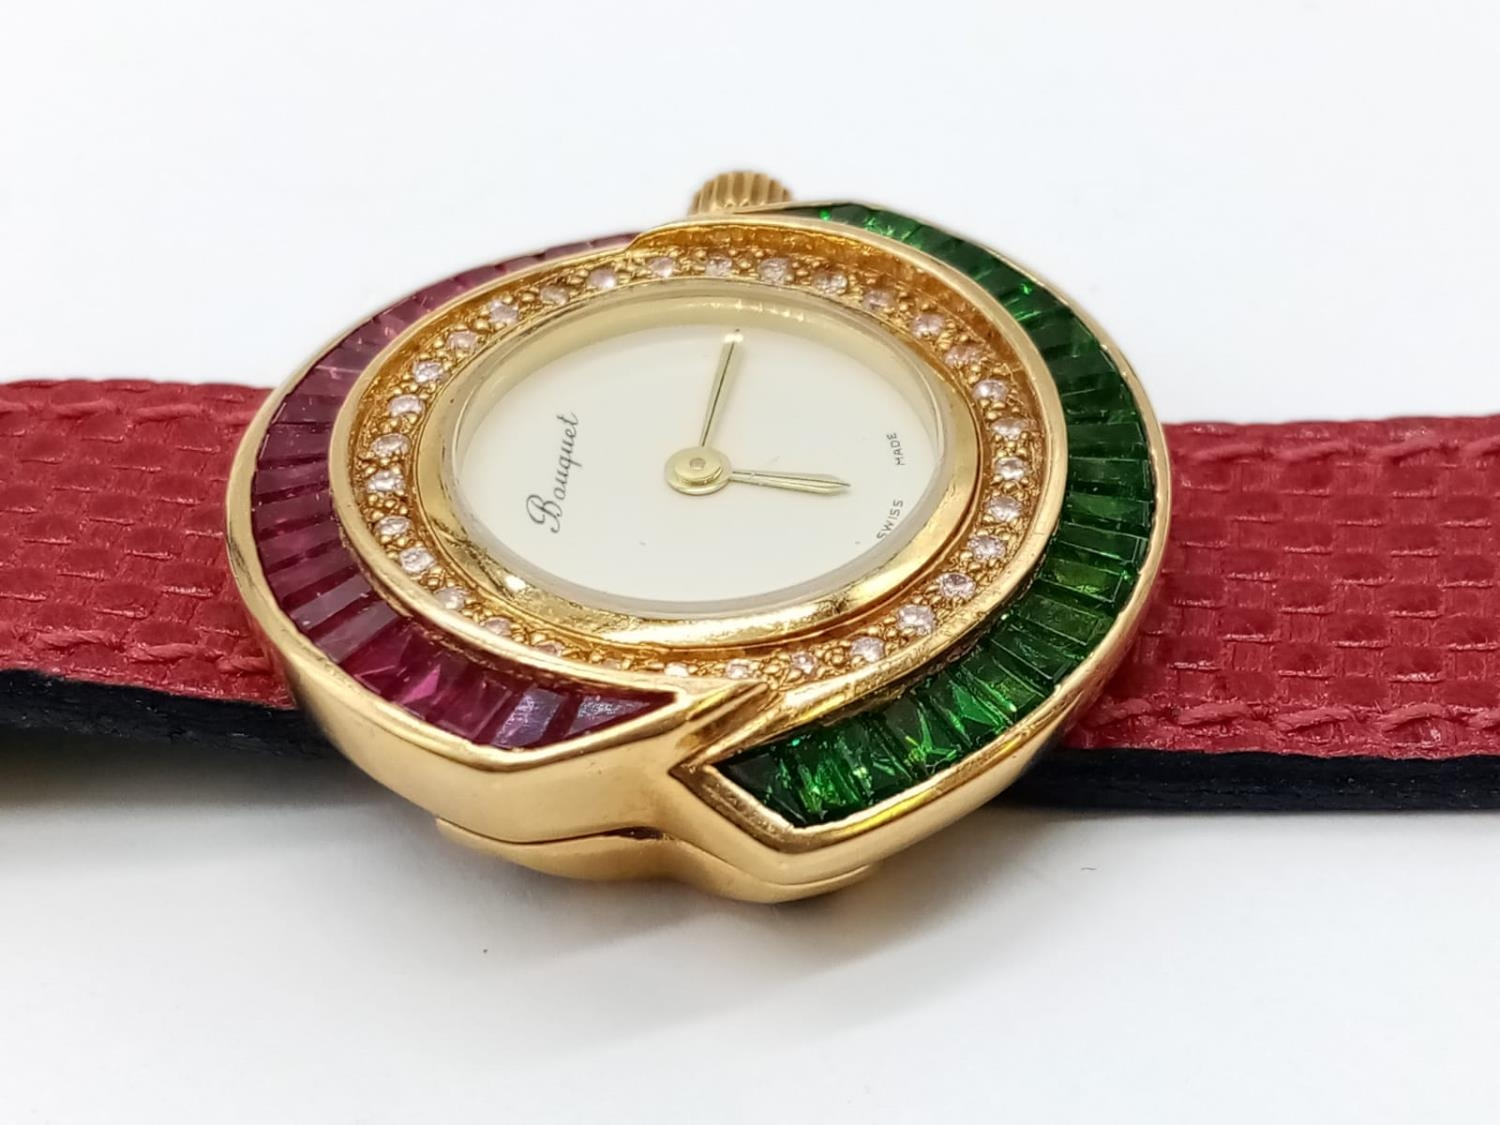 Vintage Bouquet 18ct gold ladies dress watch, round face with emerald, ruby and diamonds surround, - Image 8 of 9